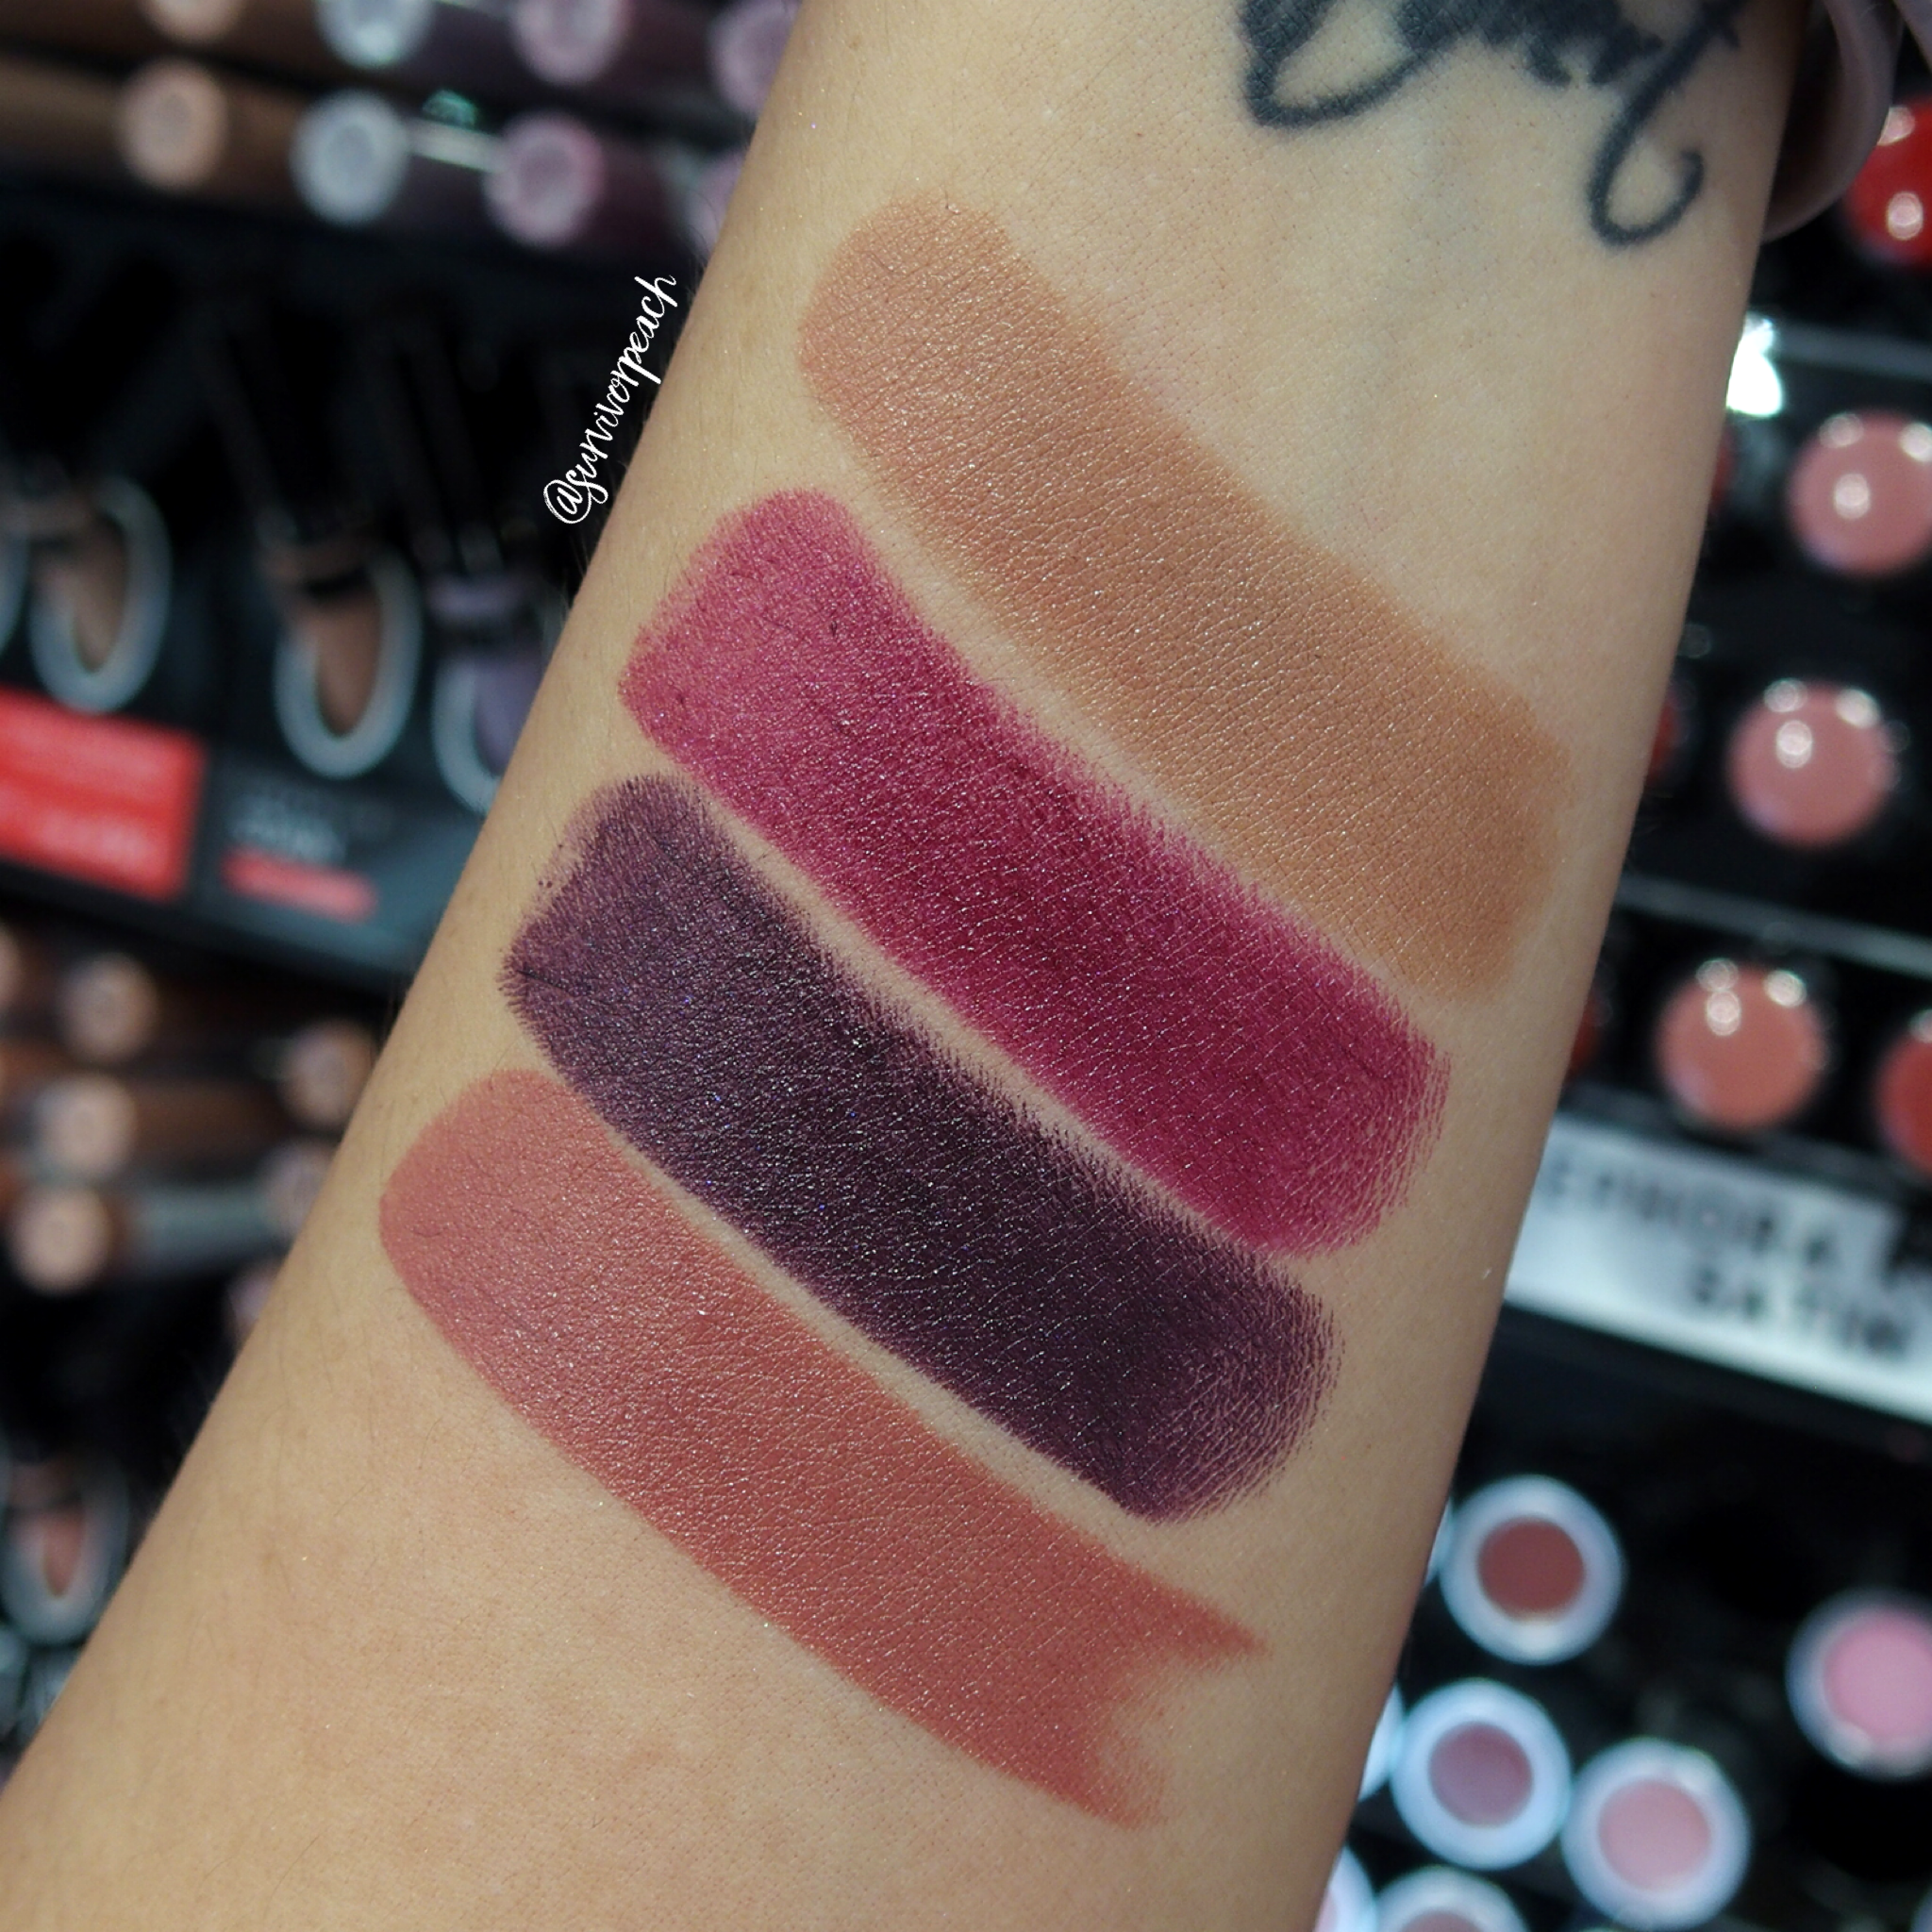 Sephora Collection Rouge Satin Lipstick swatches - S21 Ingenuous, S23 Crush, S24 Bewitch Me, 61 Lucky One